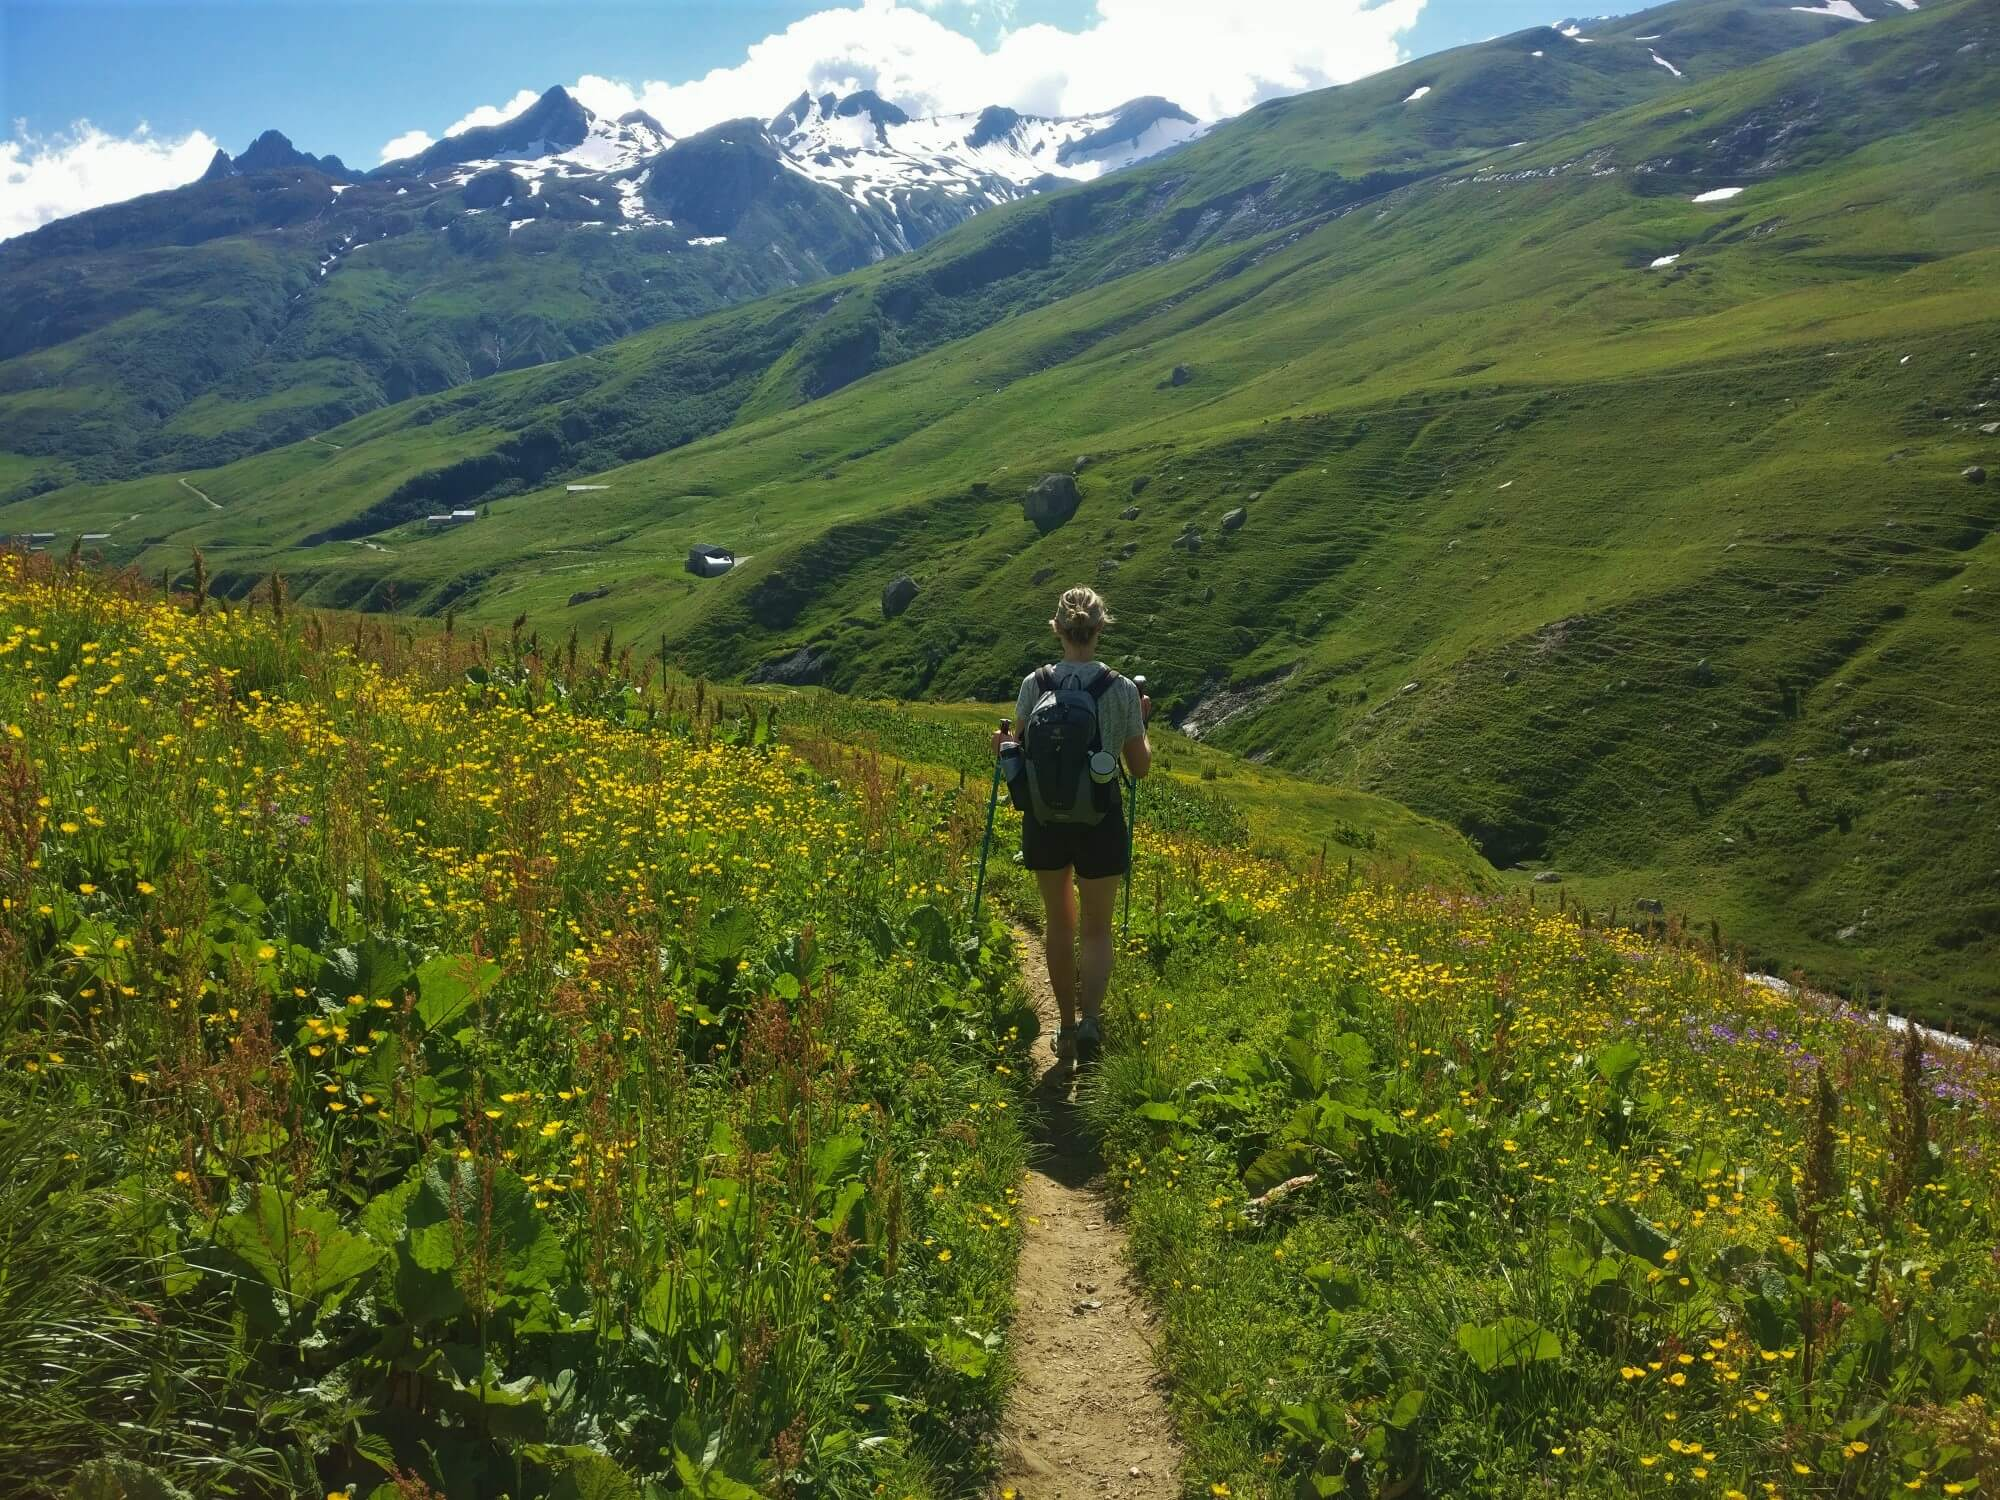 Vallée des Glacier:  Wildflowers lining the trail in June/July